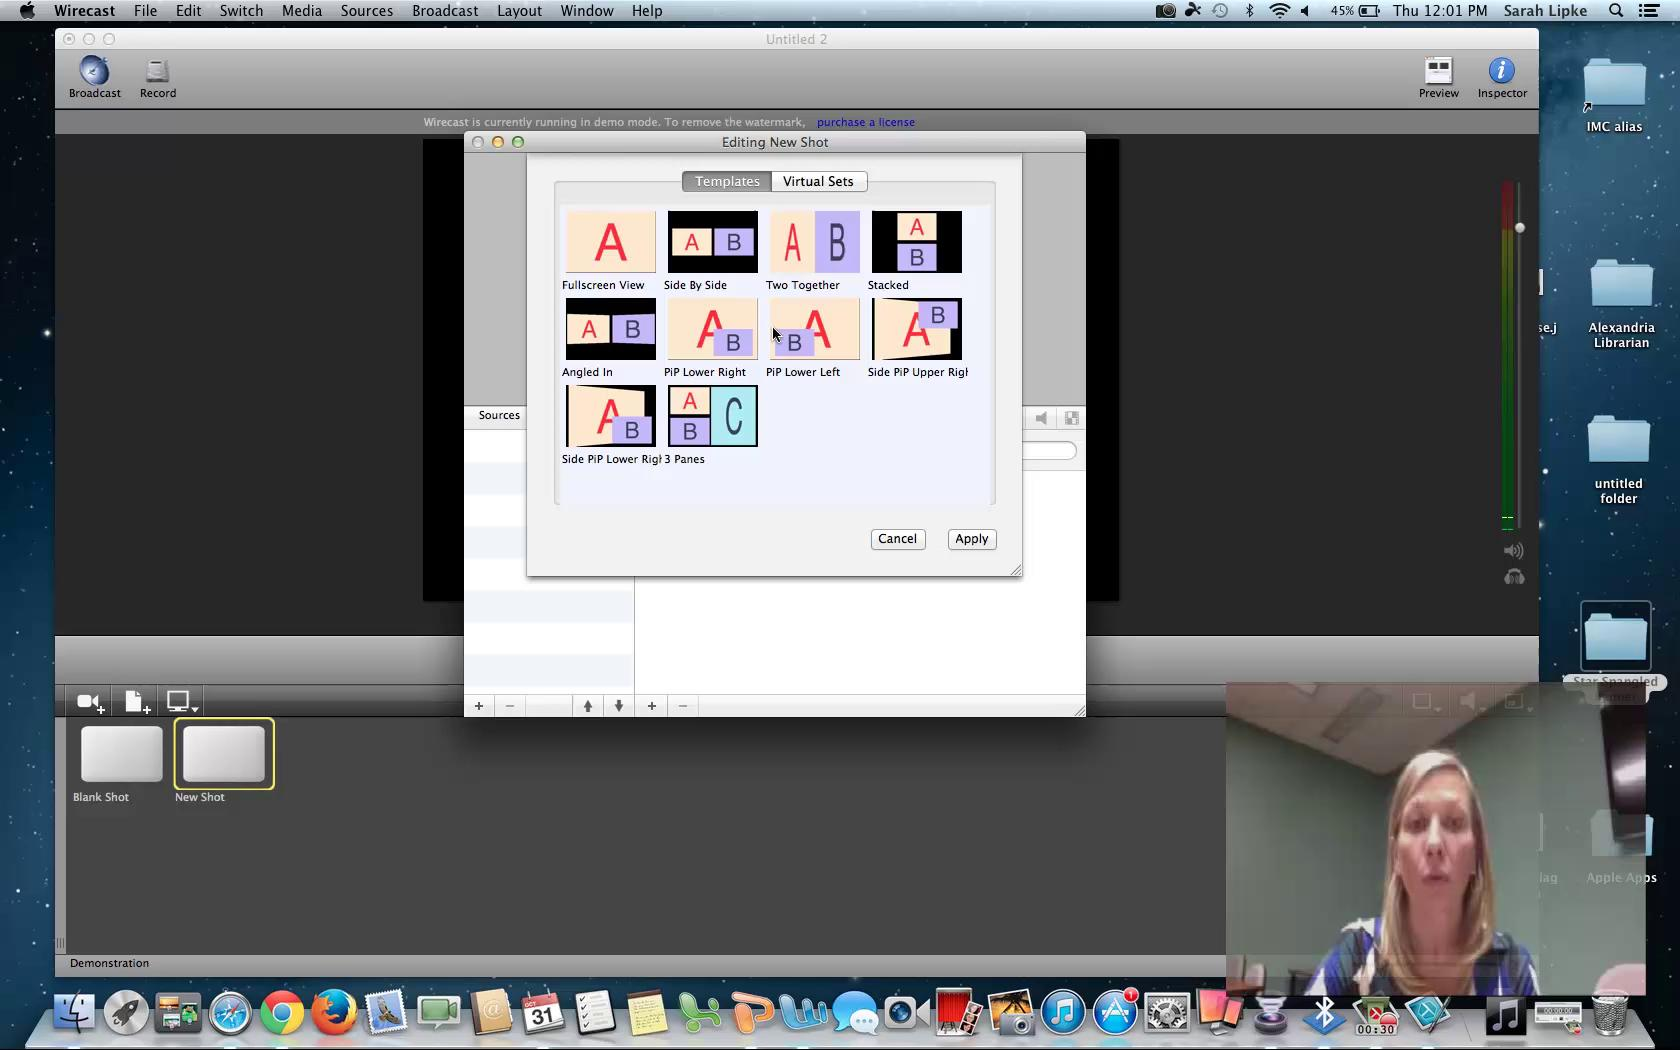 Wirecast_version4_AddingShot